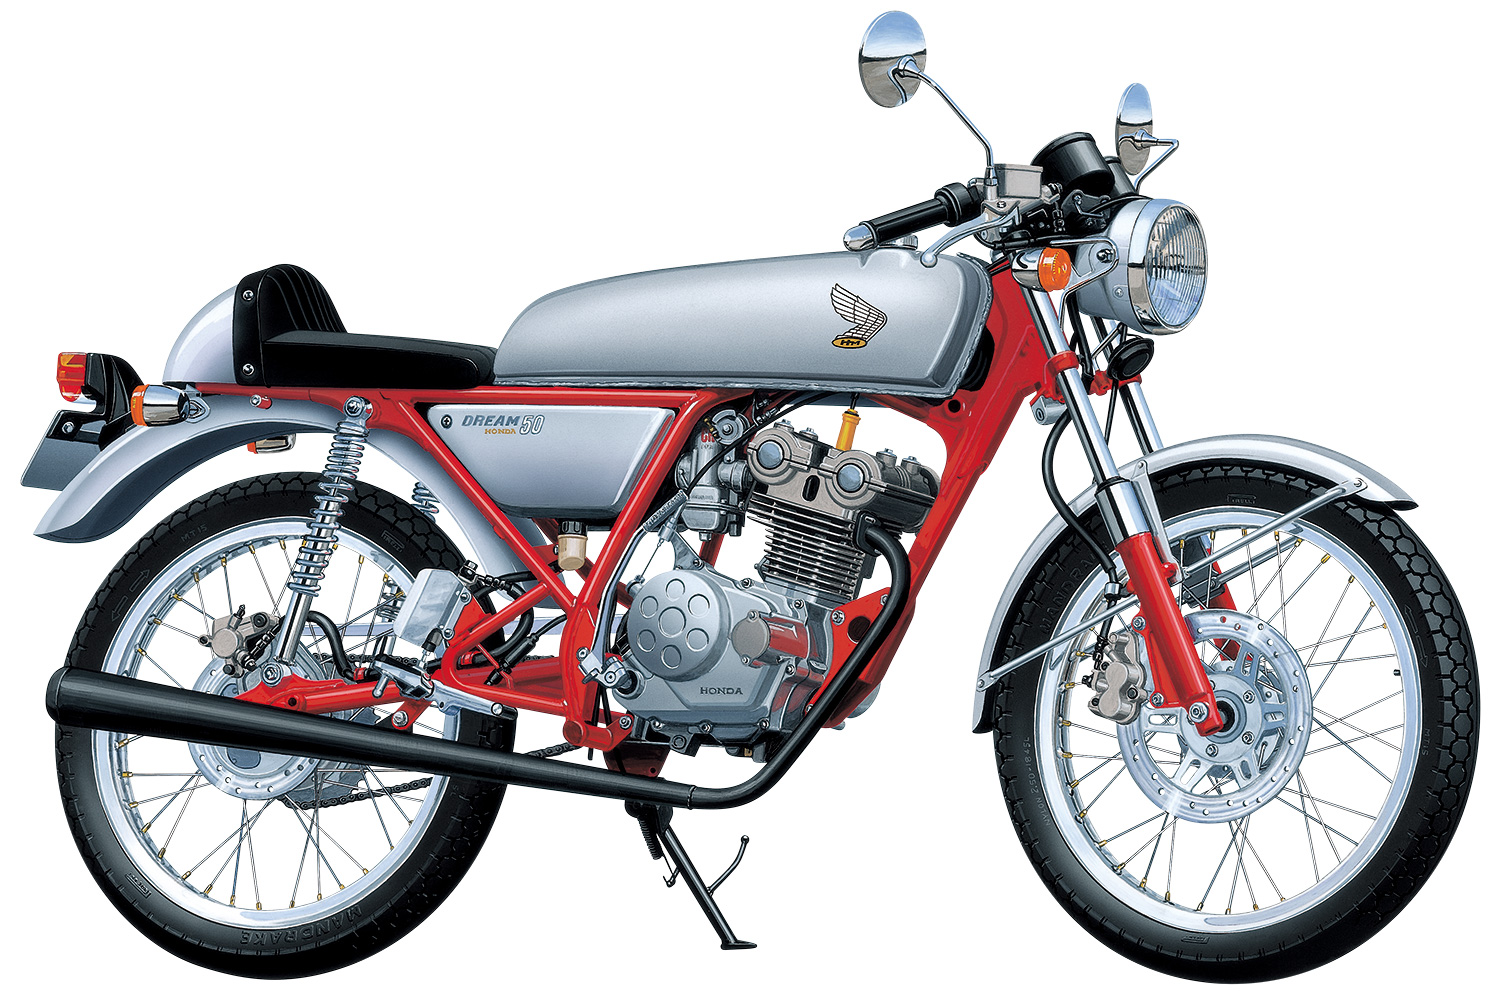 Aoshima 1/12 Honda Dream50 97 Custom